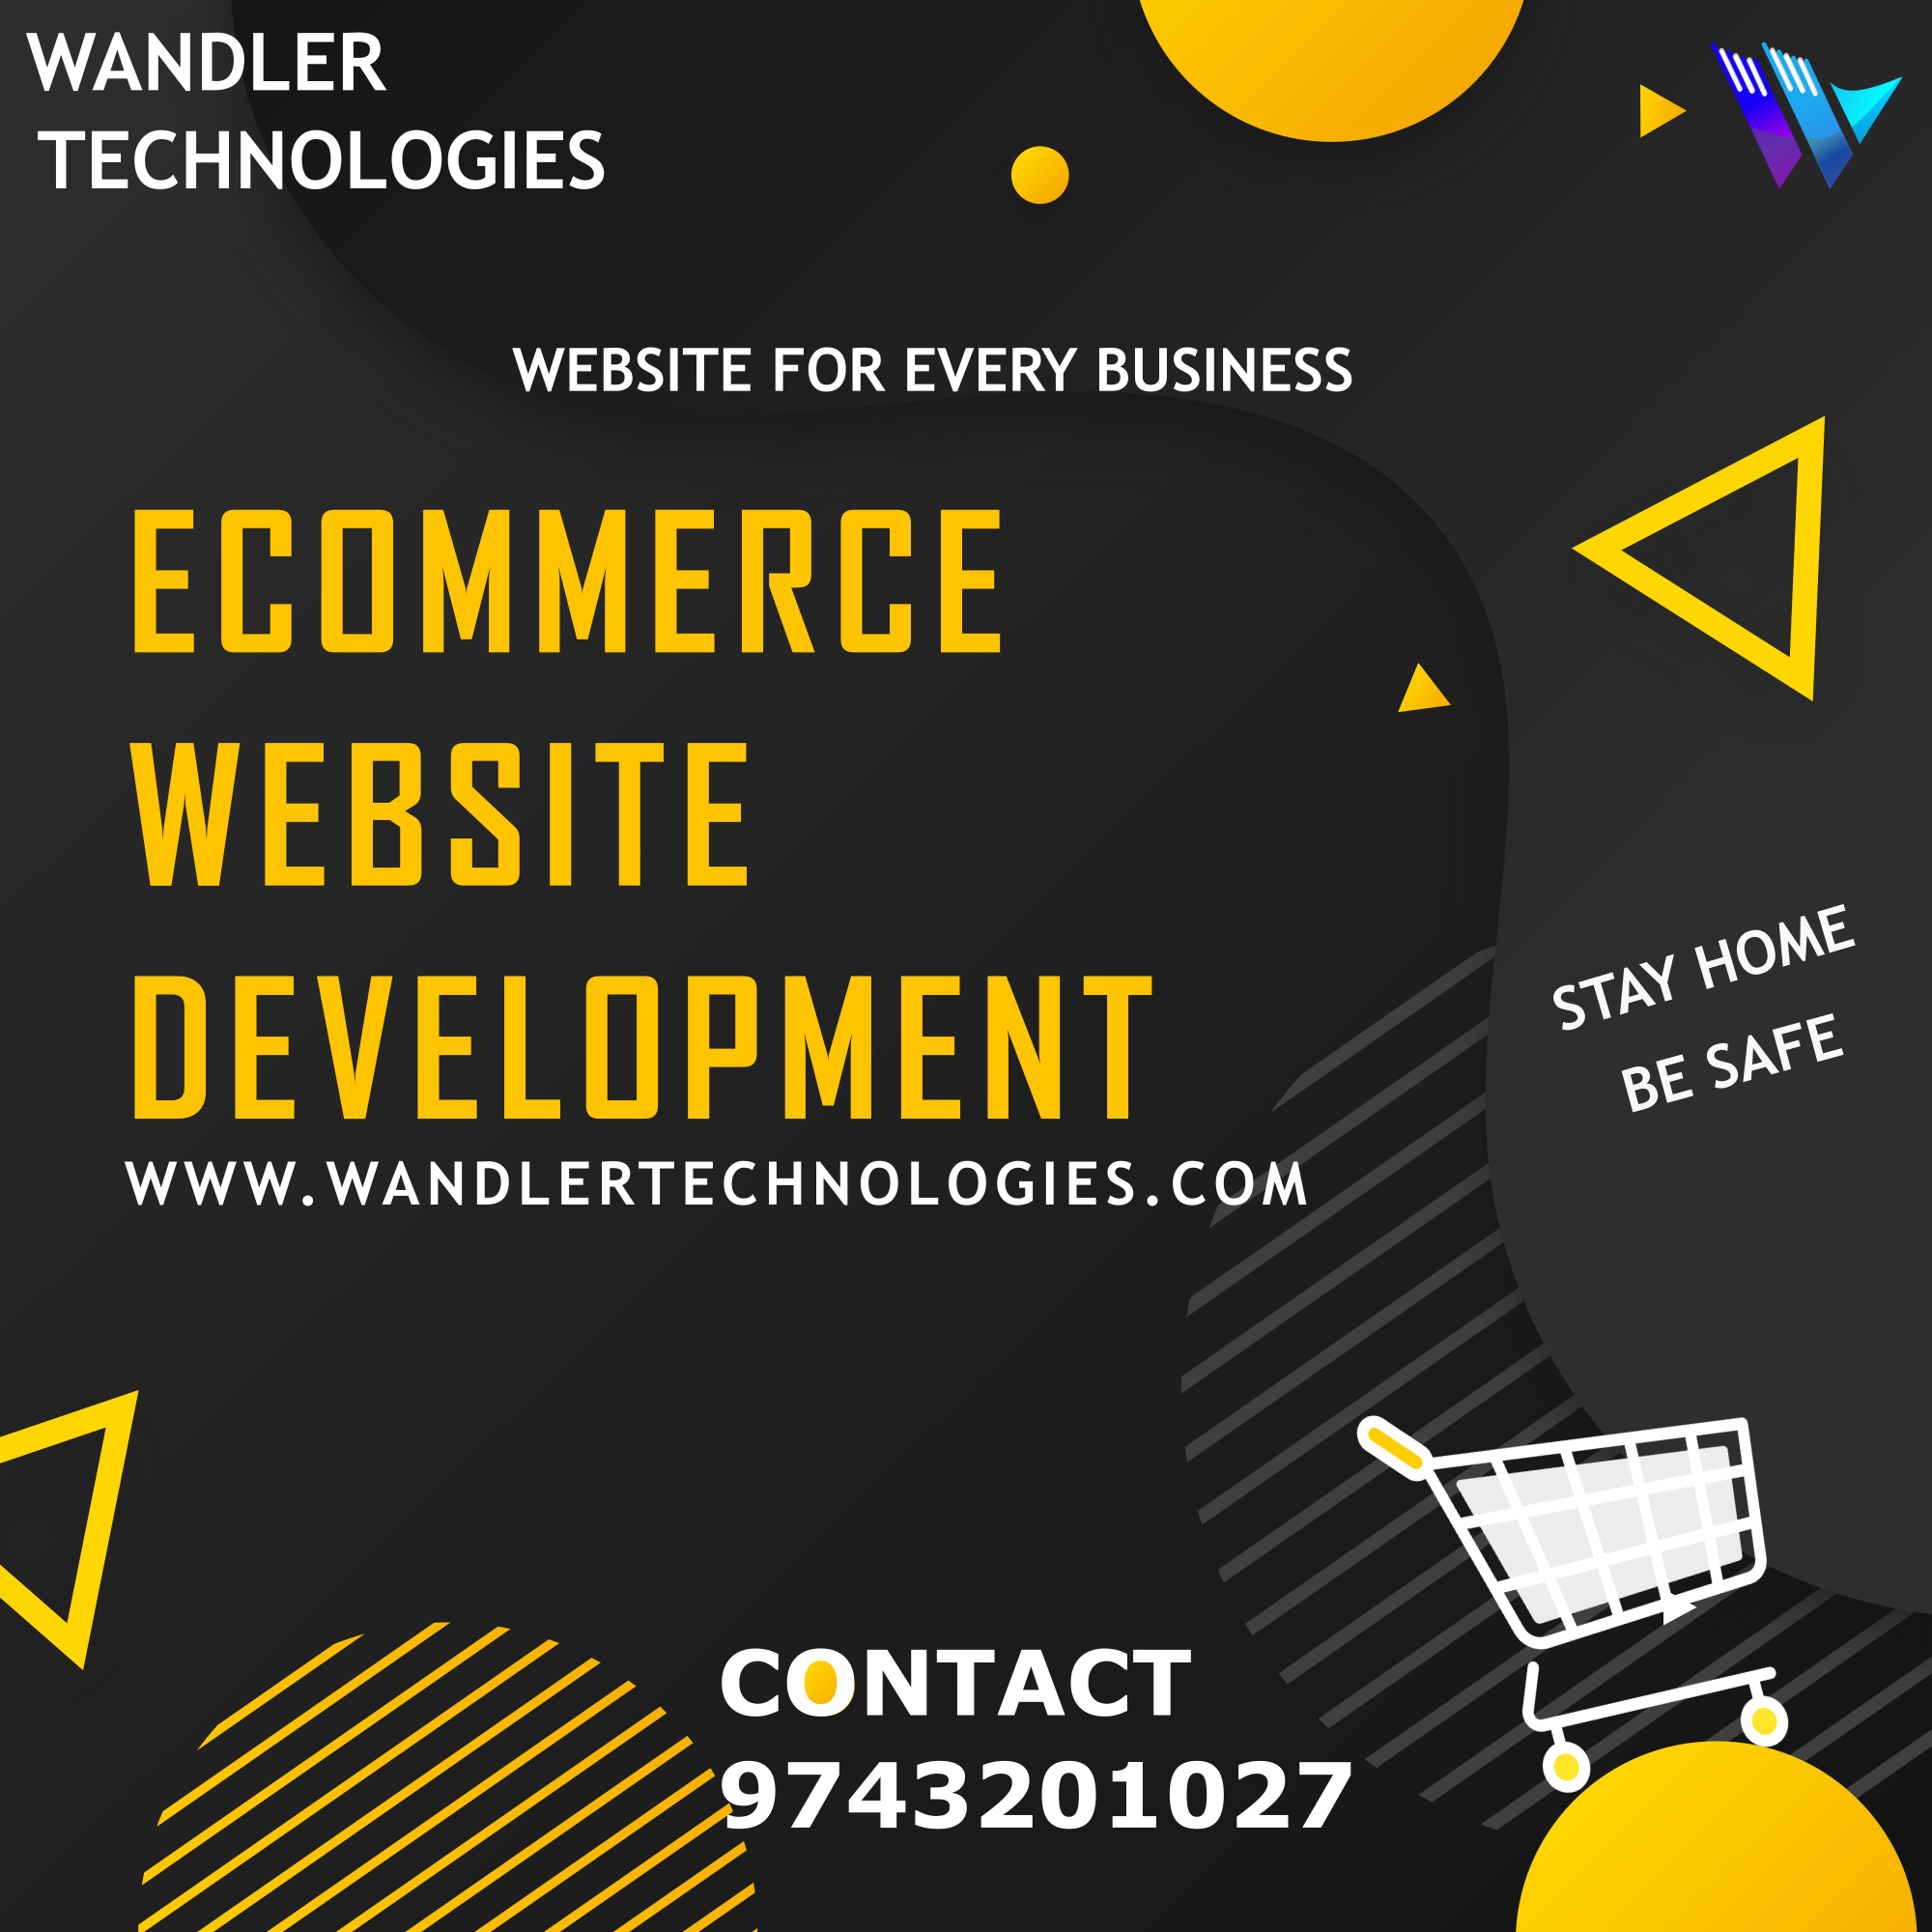 Wandler Technologies | Web Design Company In Bangalore,india